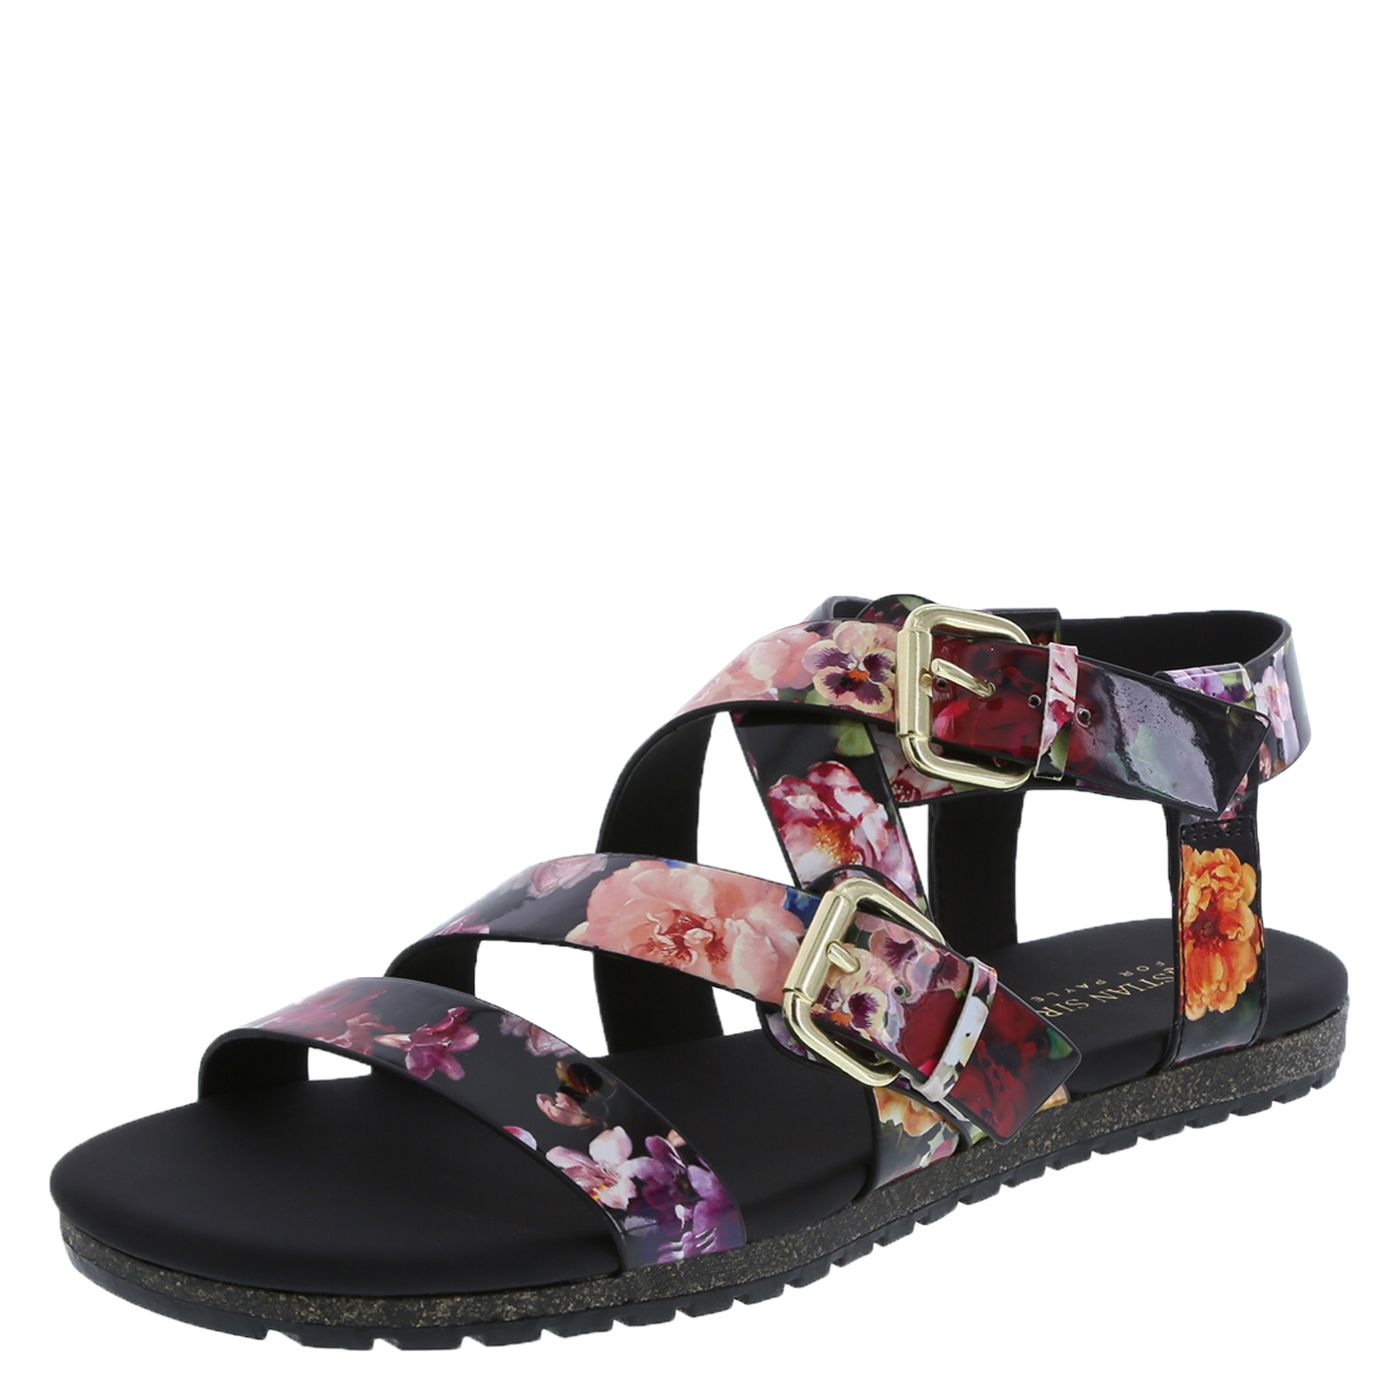 Black sandals at payless